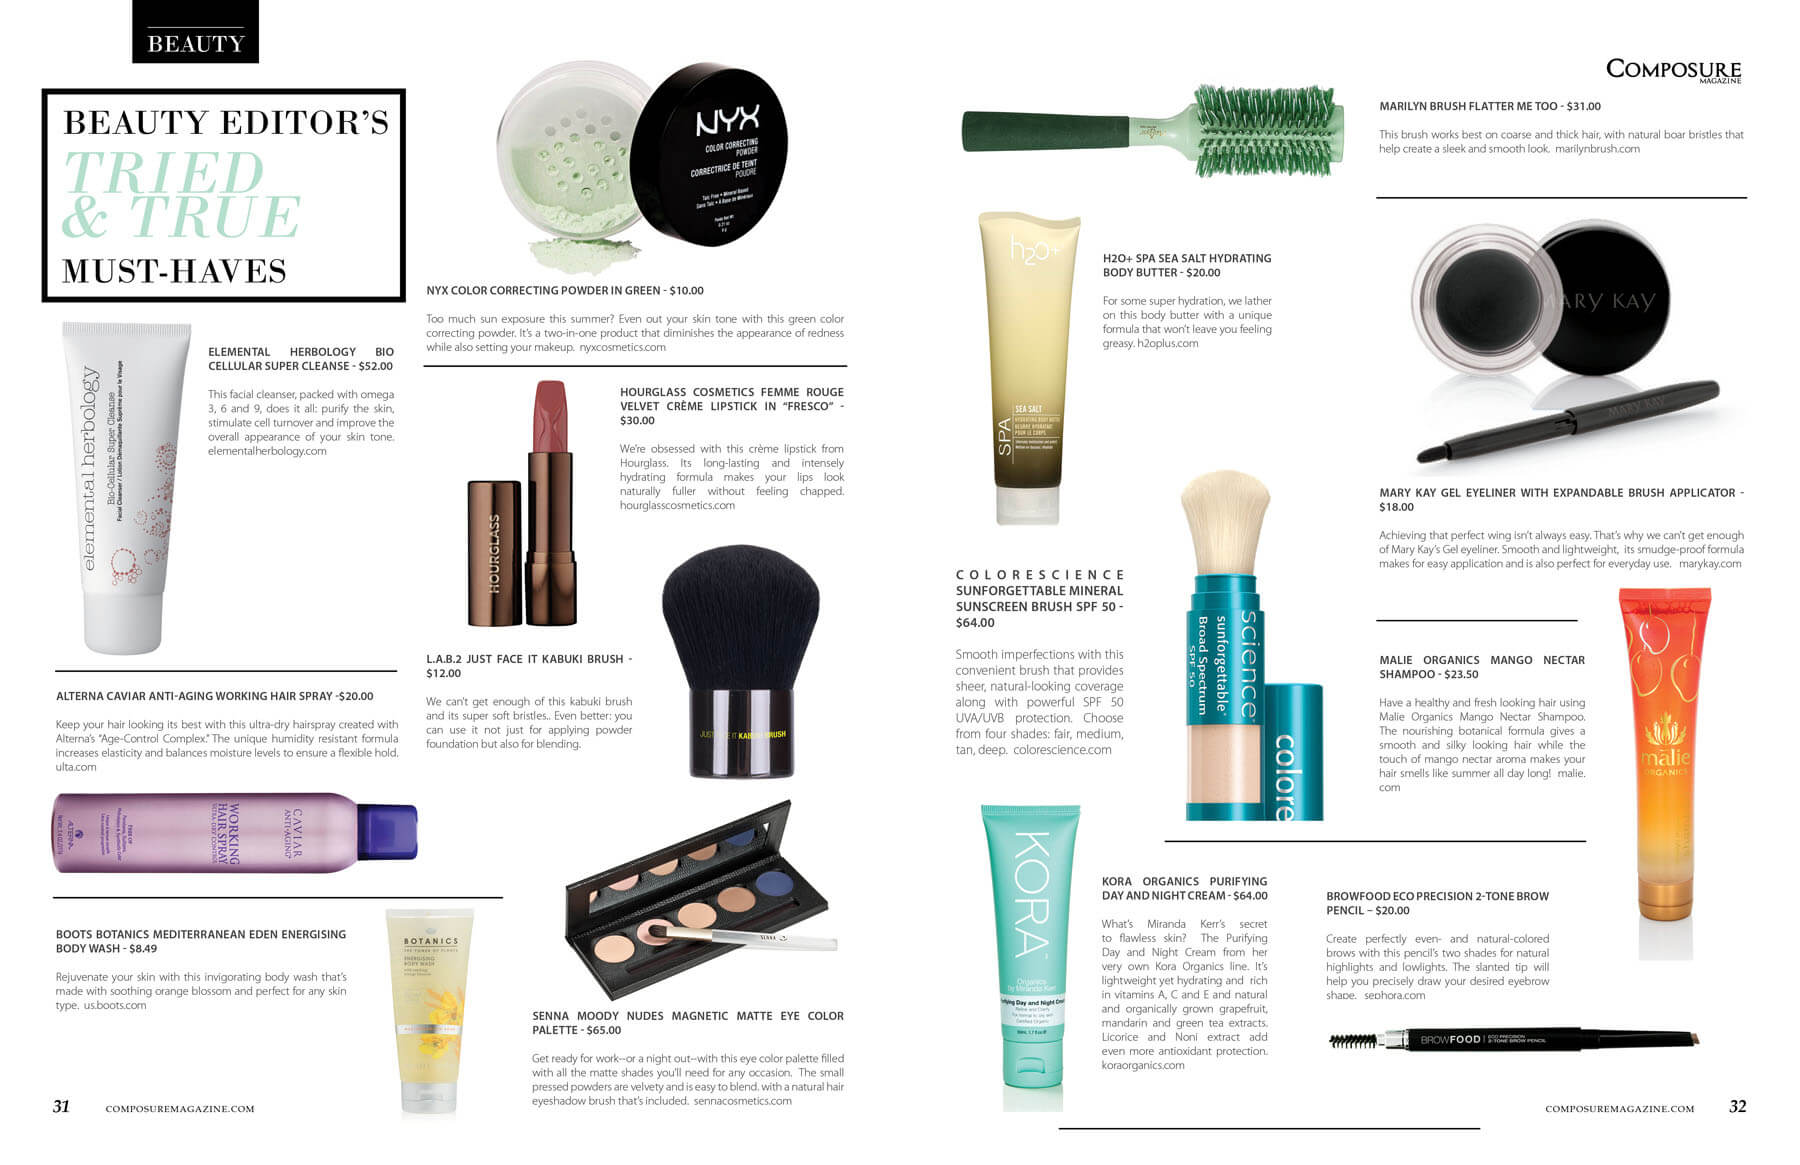 Beauty Editor's Must Haves. Beauty and skincare product reviews, advice, and tips.